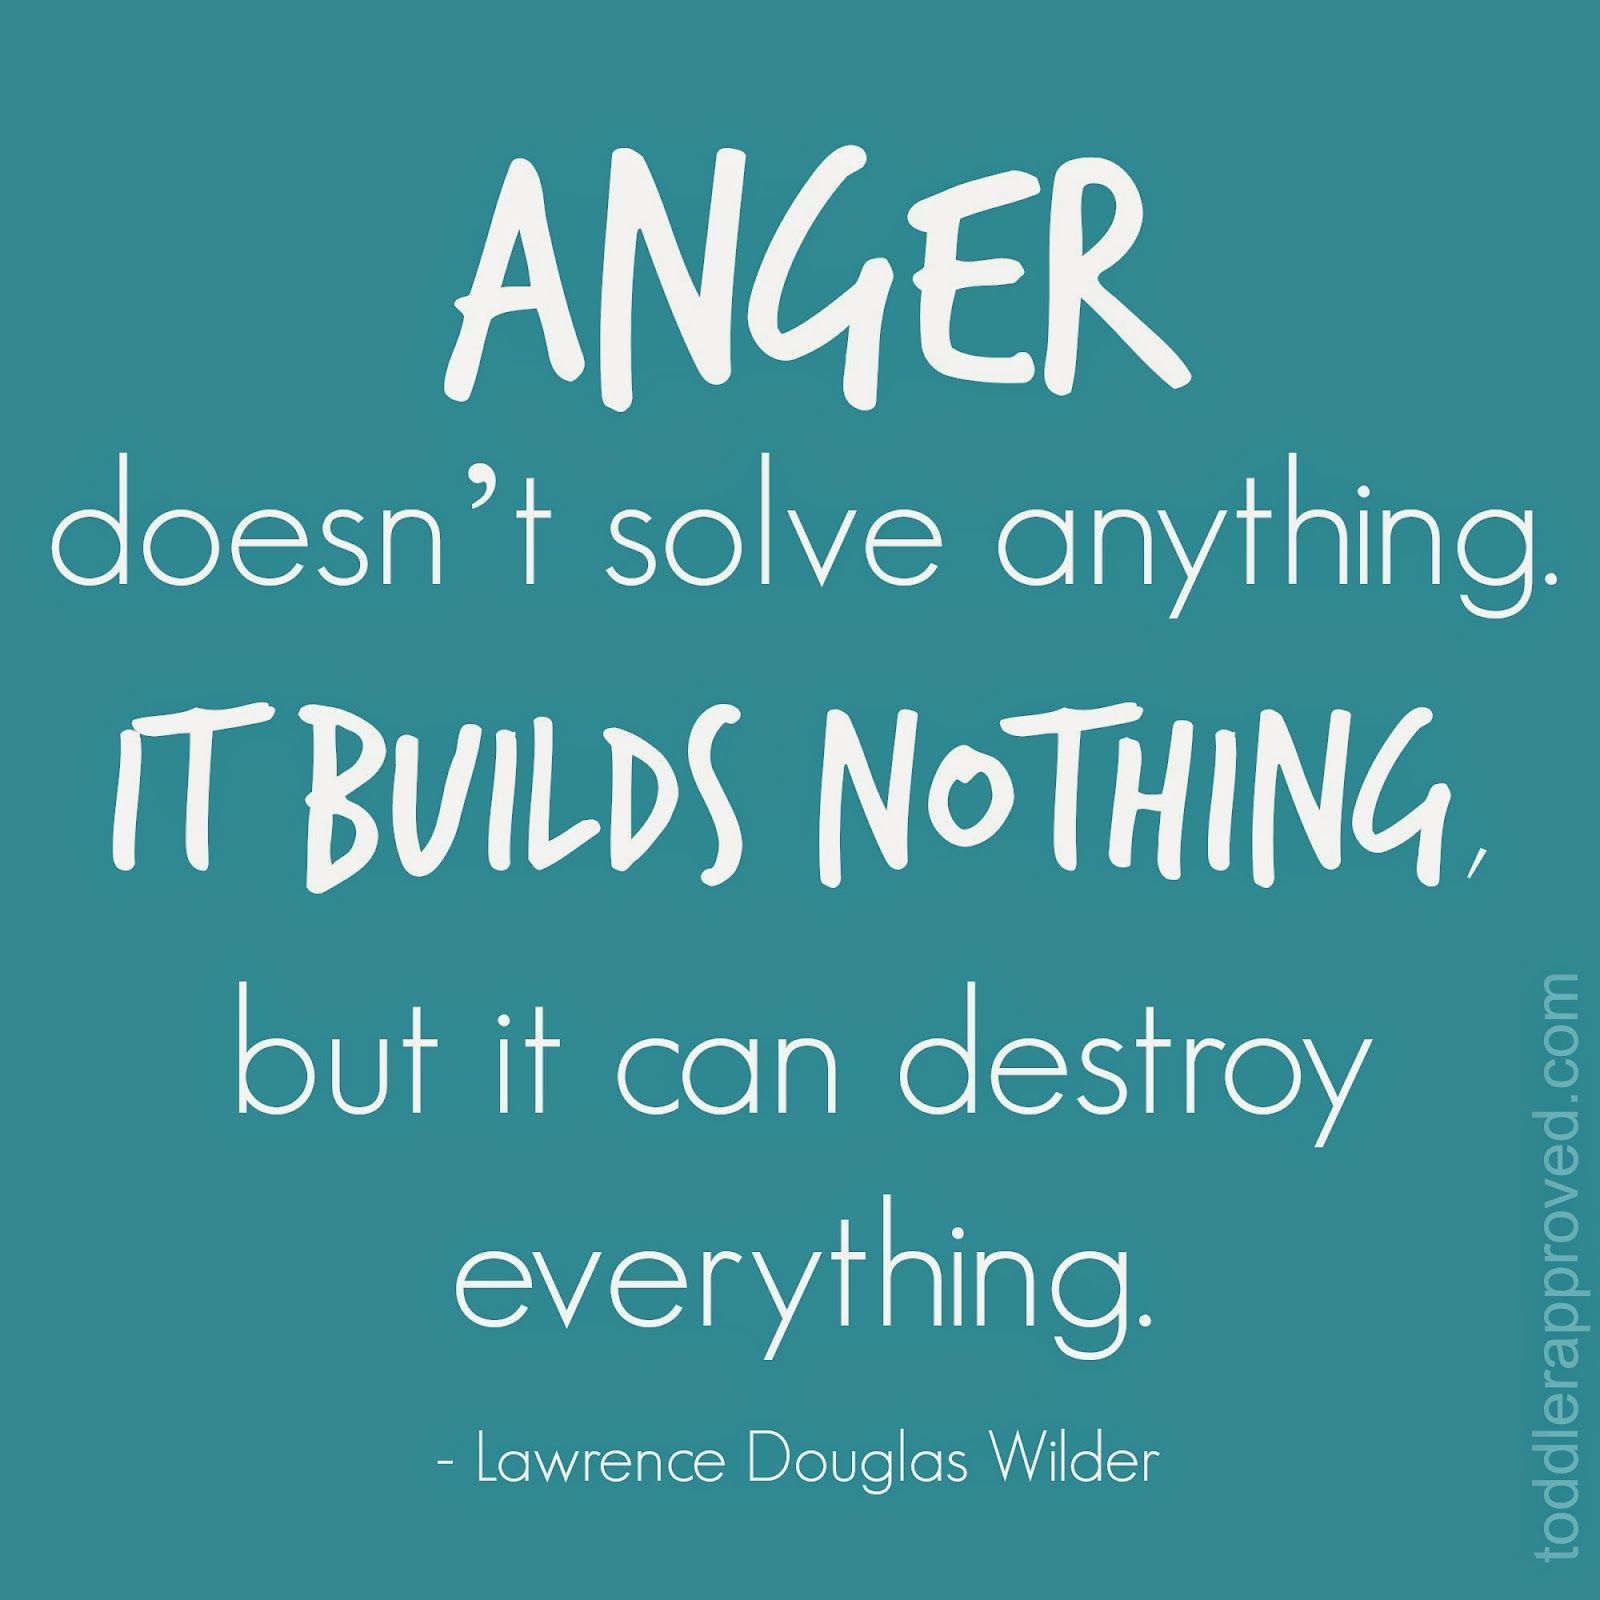 92 Anger Quotes To Control Your Emotions Emotionalcontrol Anger